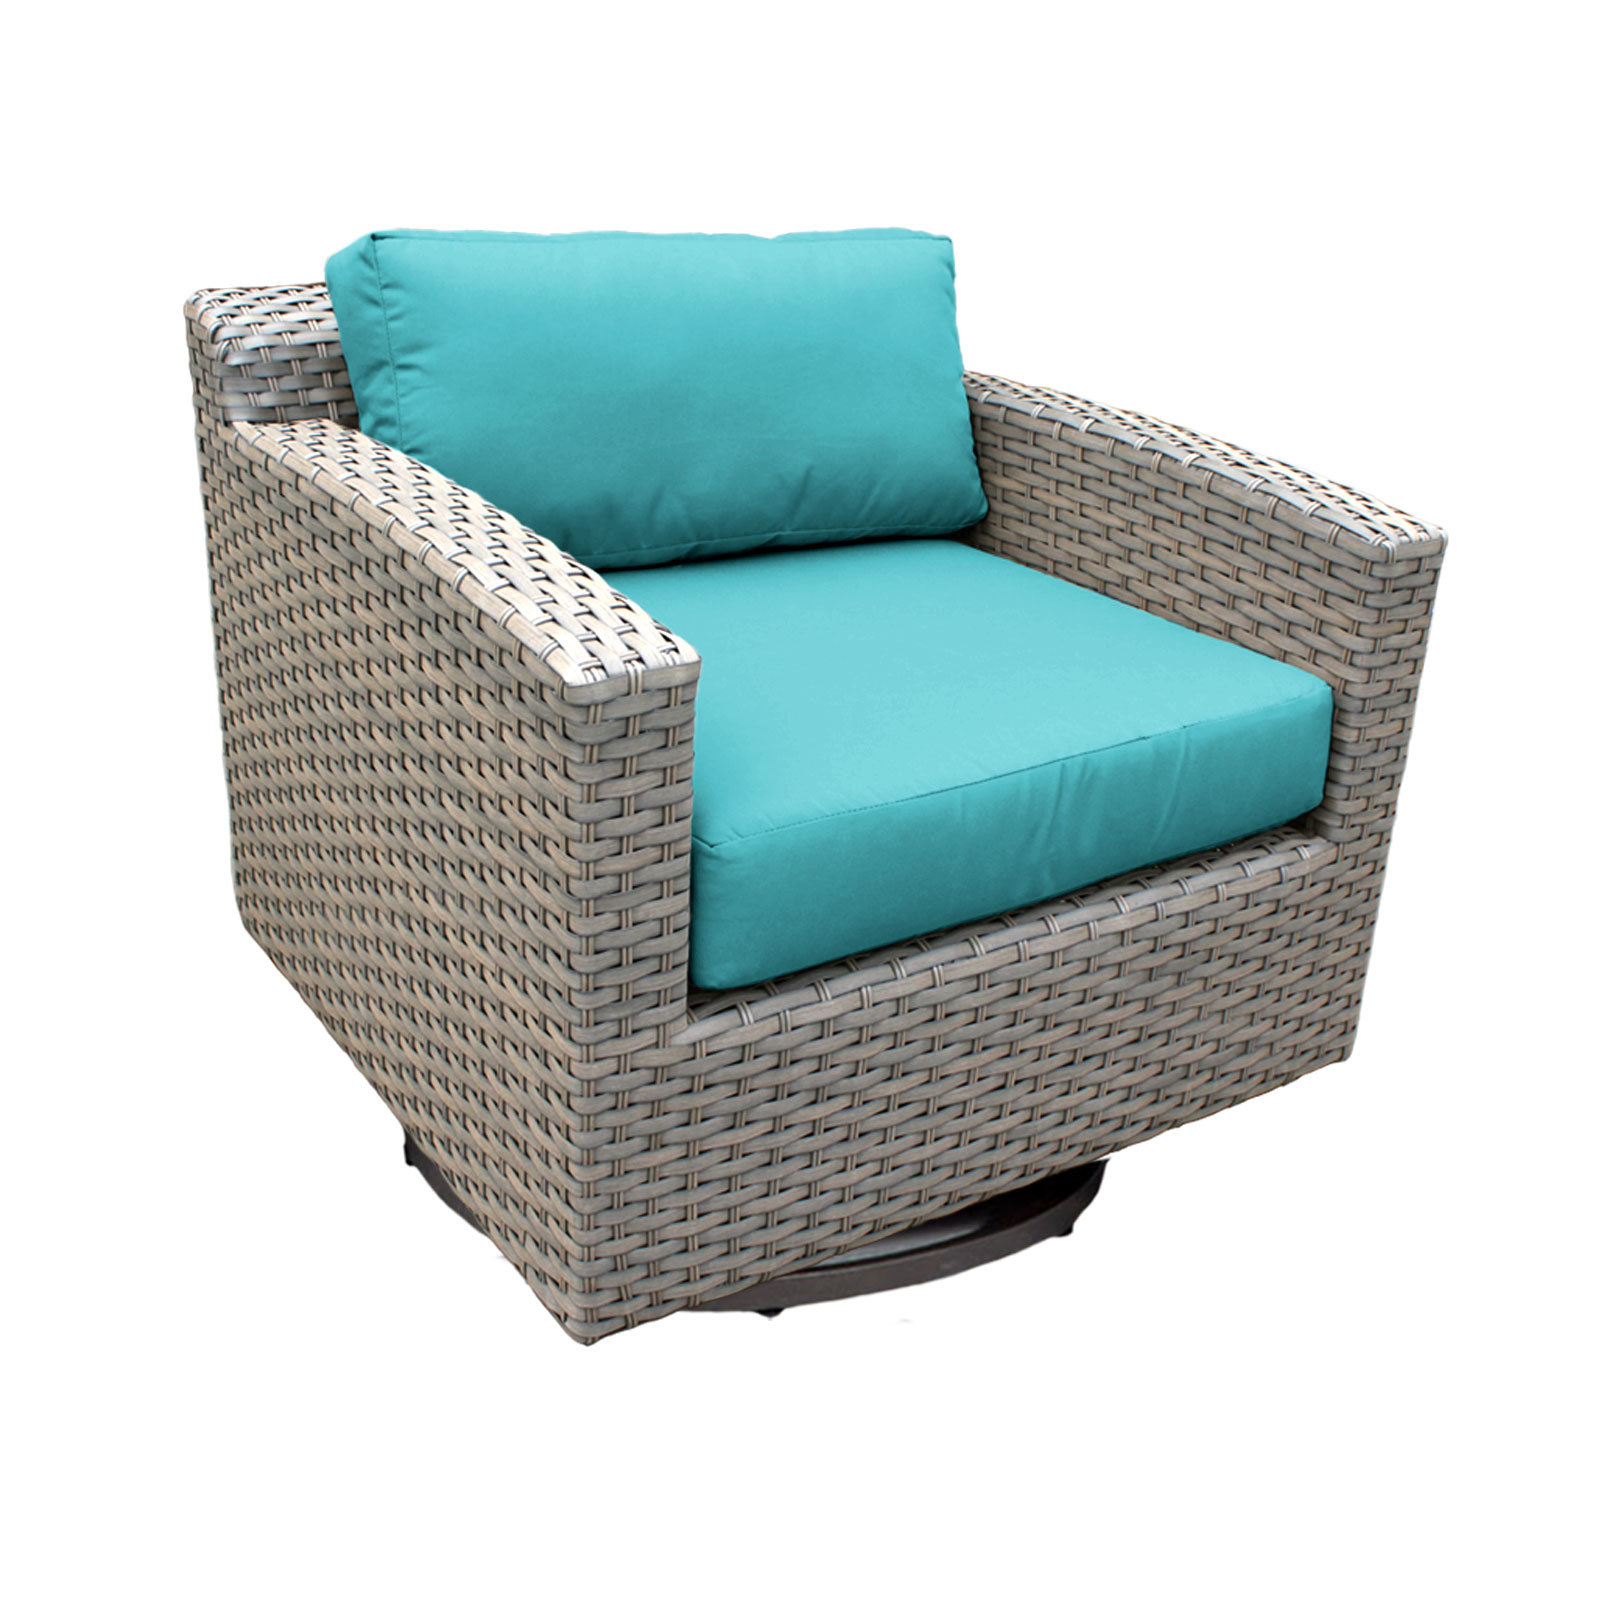 2020 Meeks Swivel Patio Chair With Cushions With Regard To Meeks Patio Sofas With Cushions (Gallery 7 of 20)